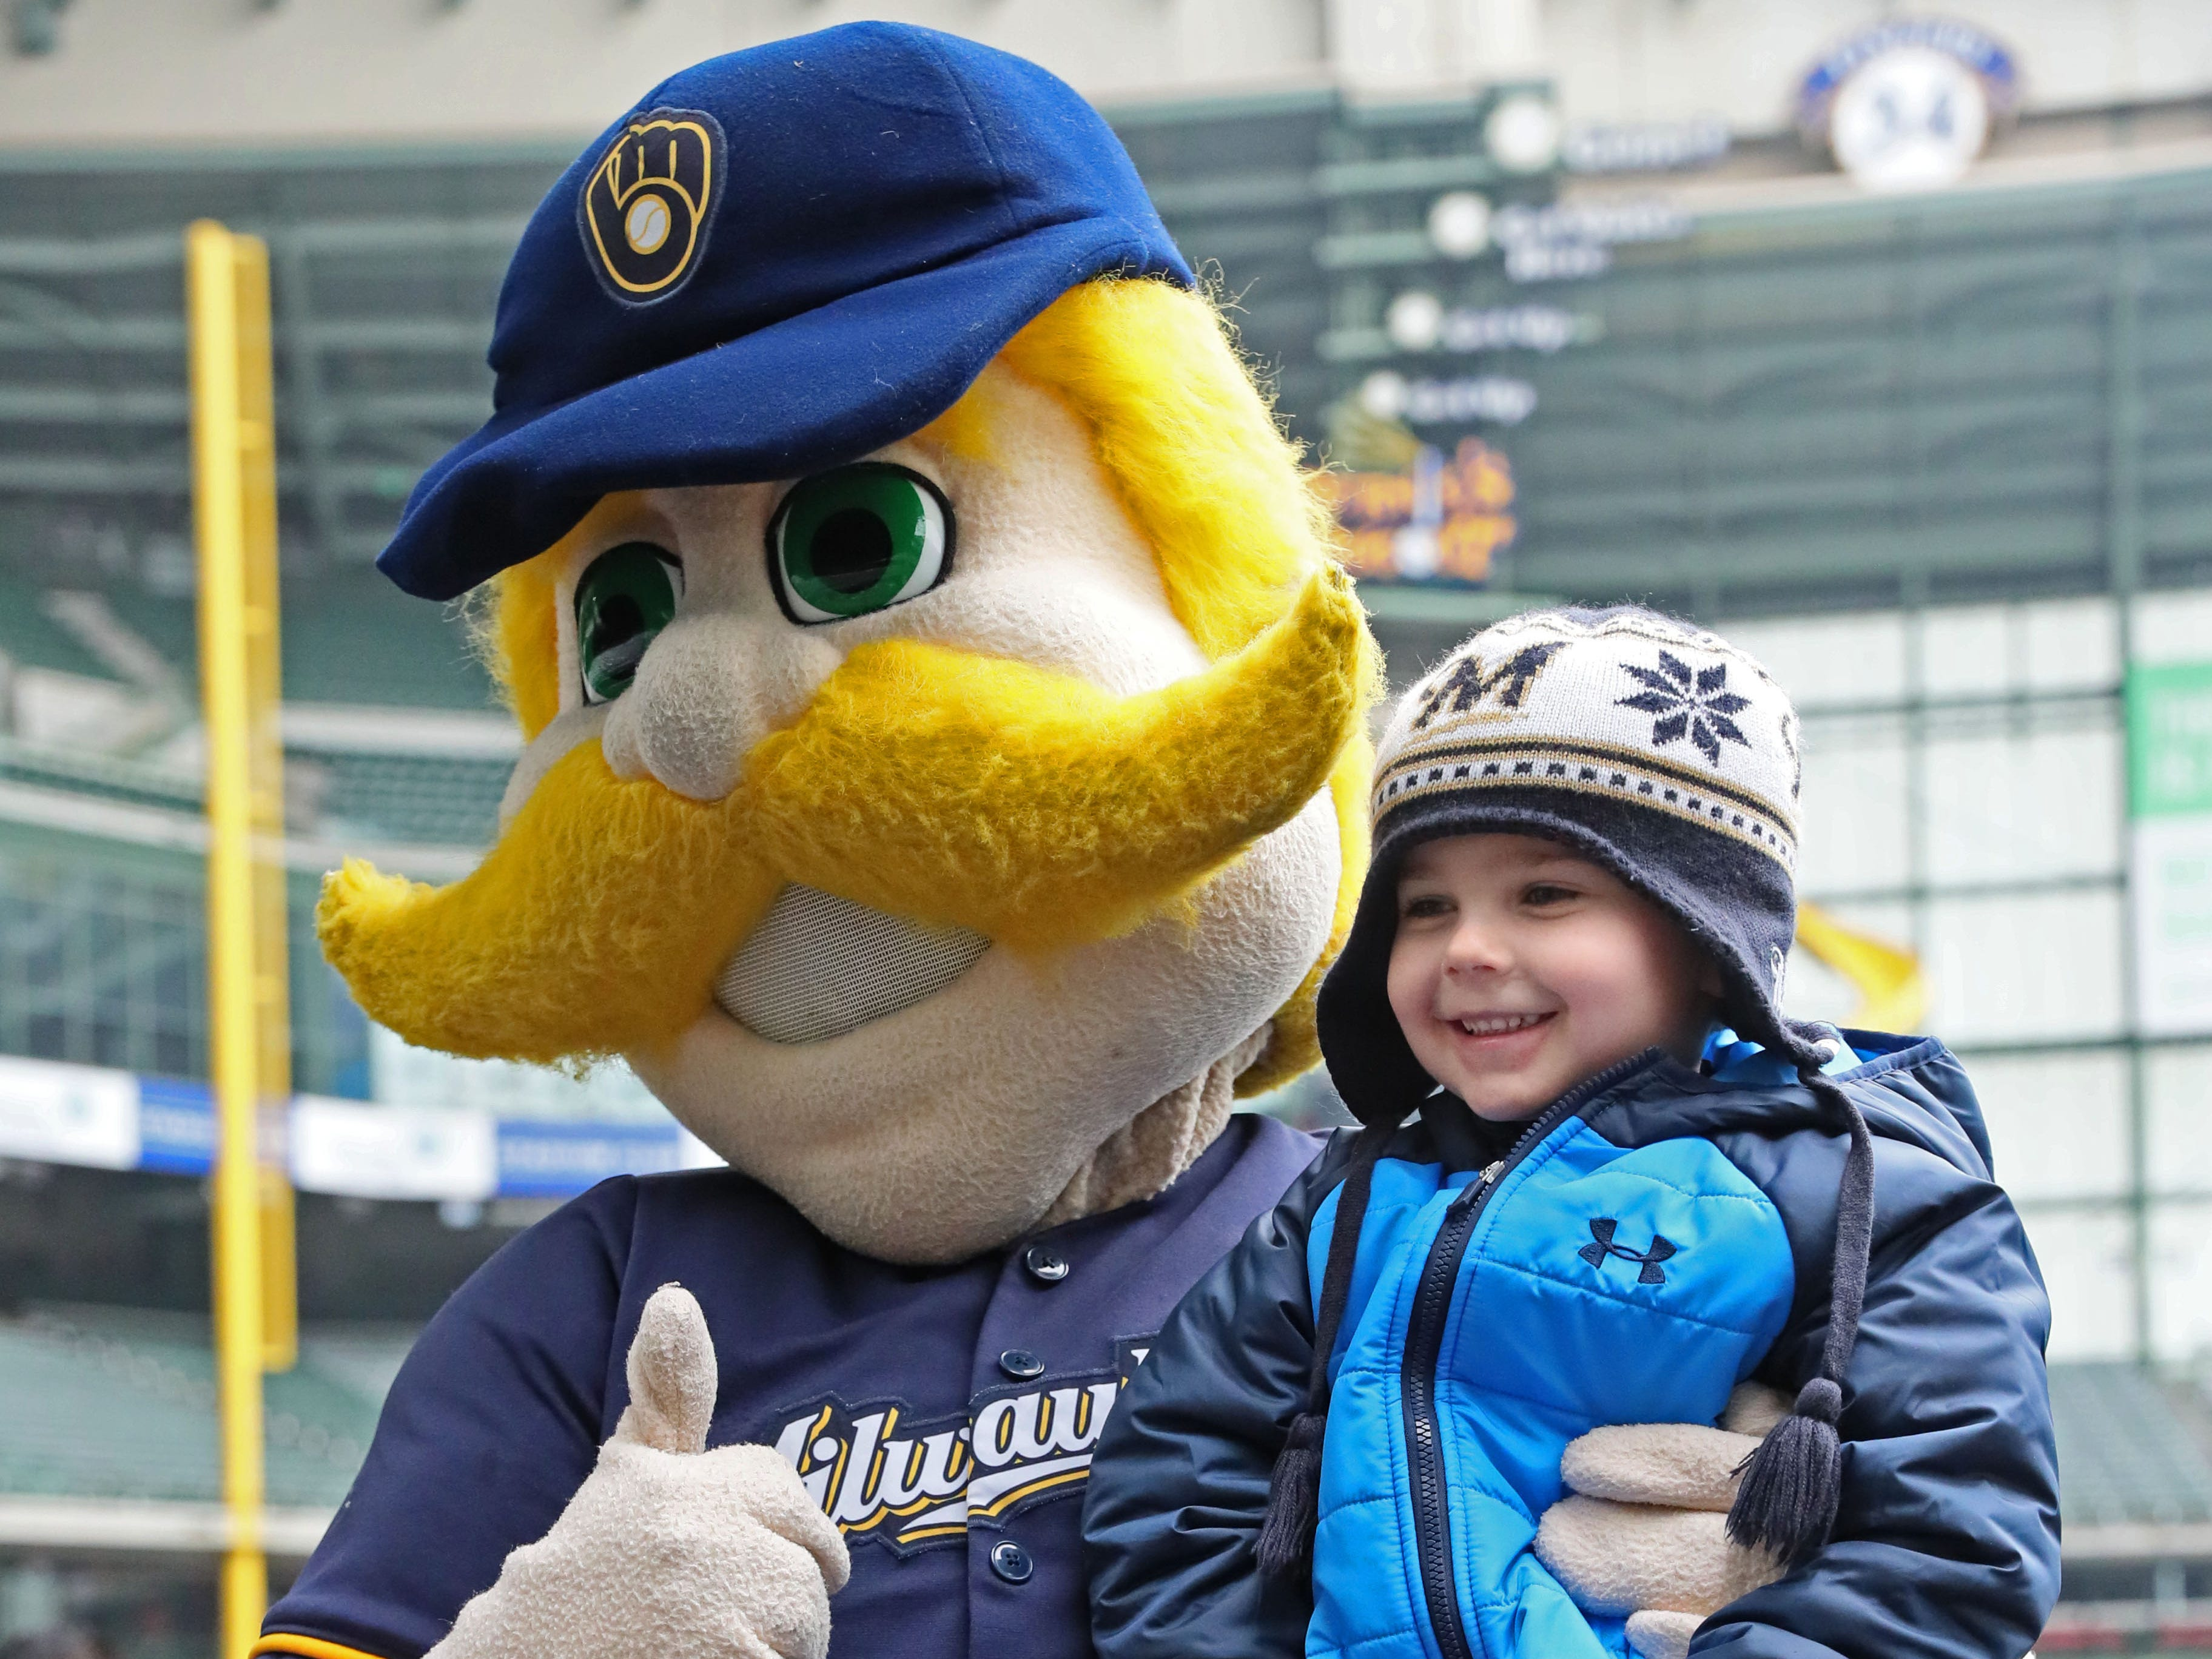 Alex Best, 5, of Sussex poses with Bernie Brewer at the sale Friday.